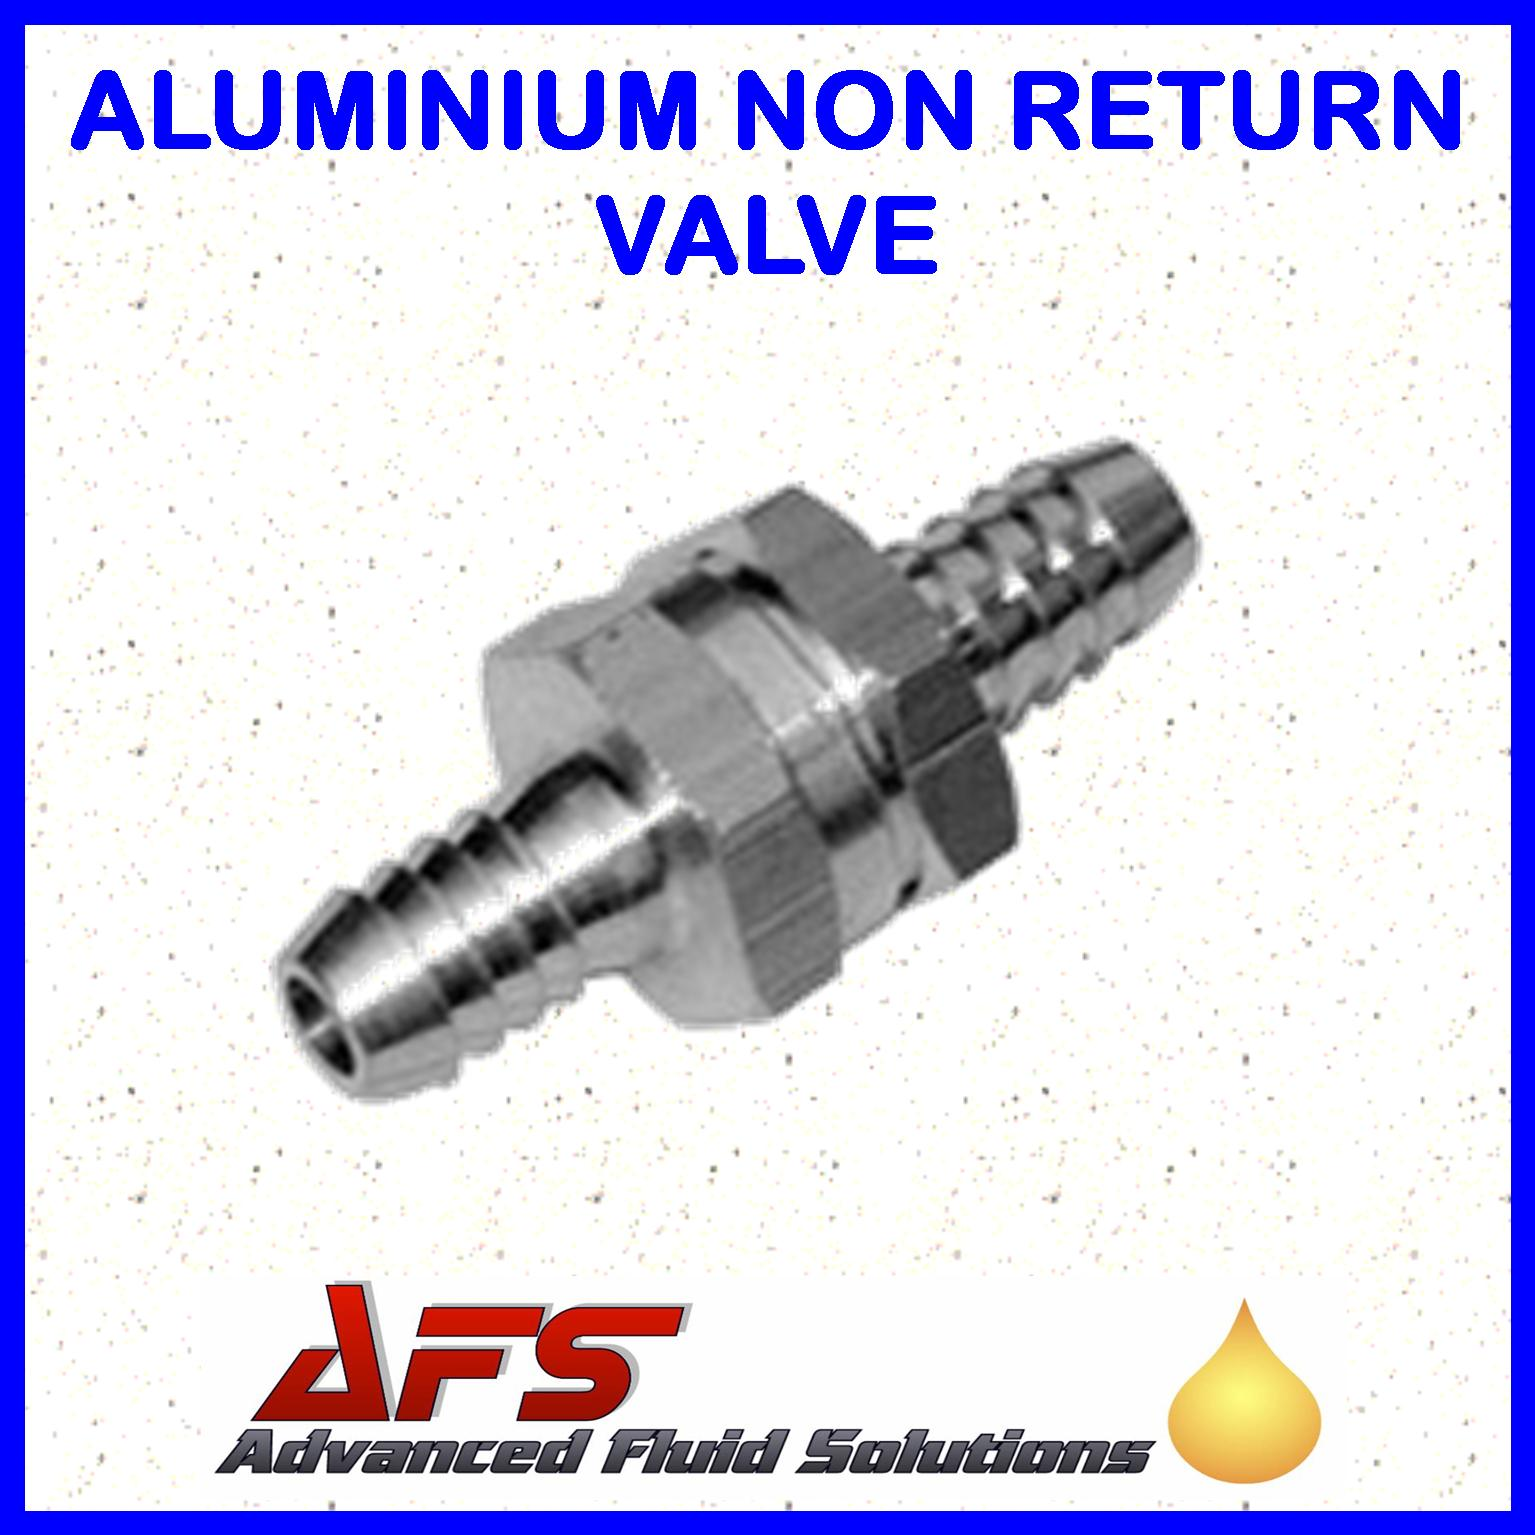 6mm (1/4) Straight Non Return Valve Aluminium - Fuel Check Valve Air Water  Pipe Tube Hose. «